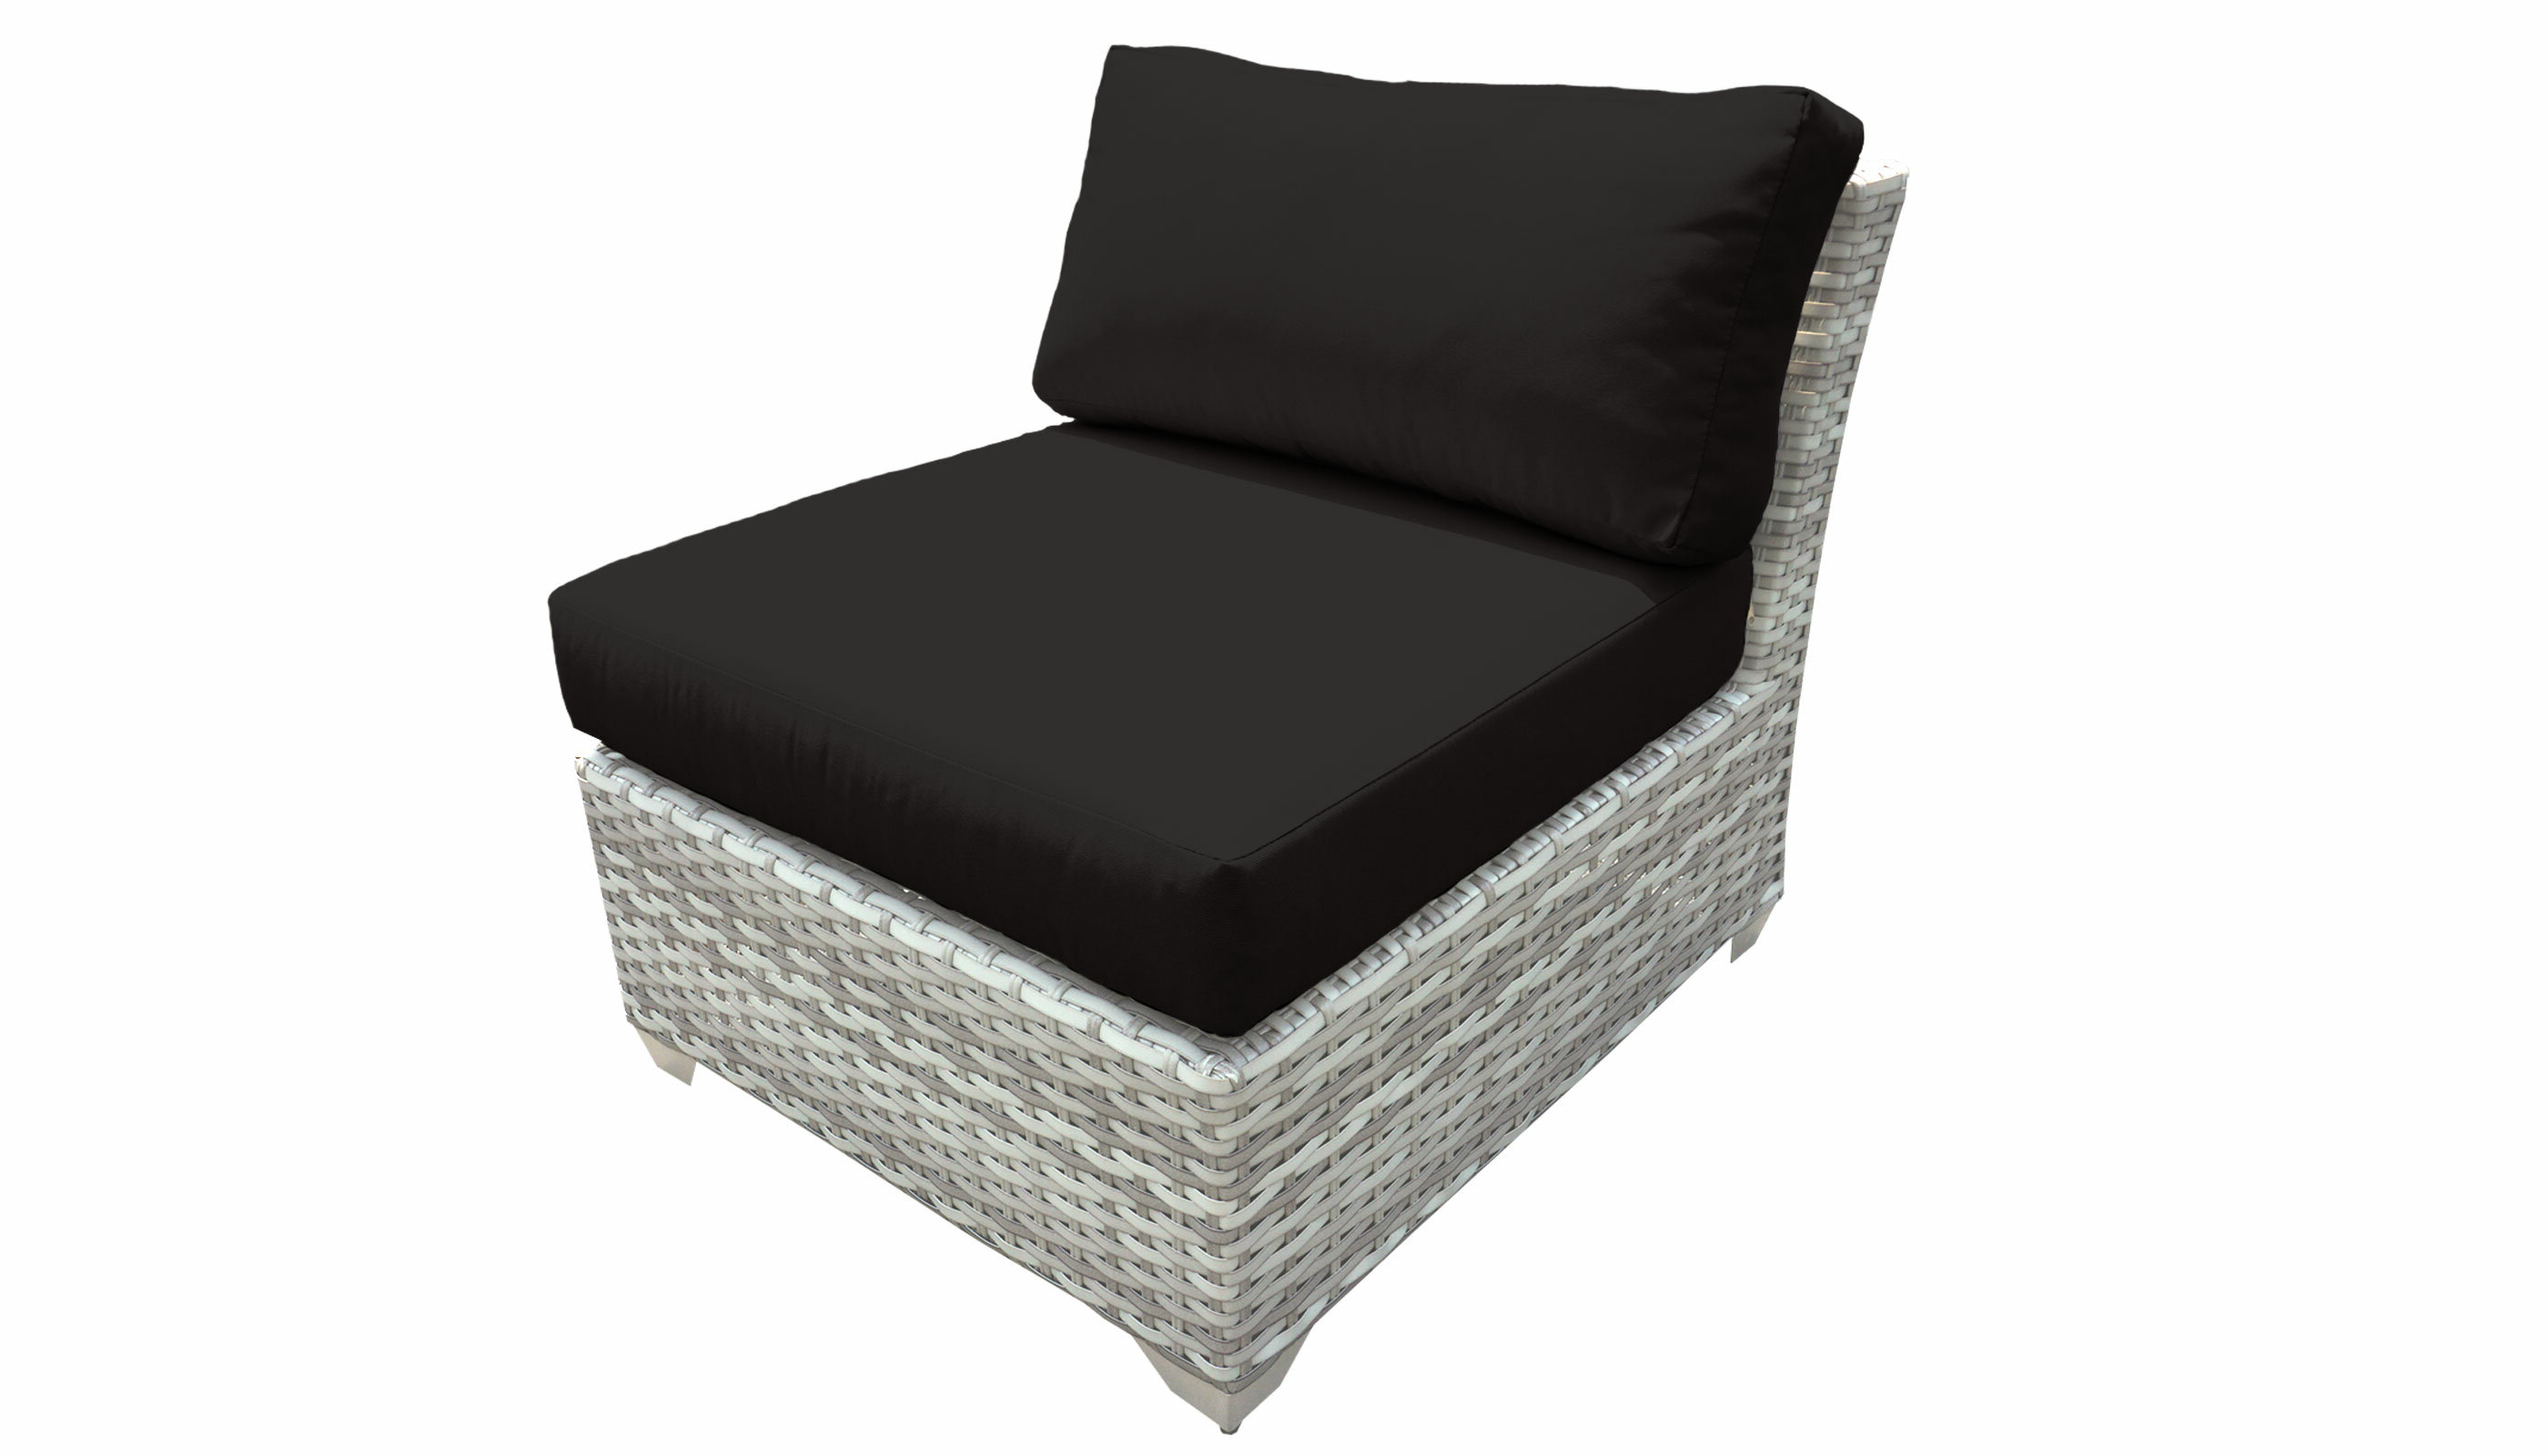 Falmouth Armless Patio Chair With Cushions Regarding Most Up To Date Falmouth Patio Sofas With Cushions (View 6 of 20)